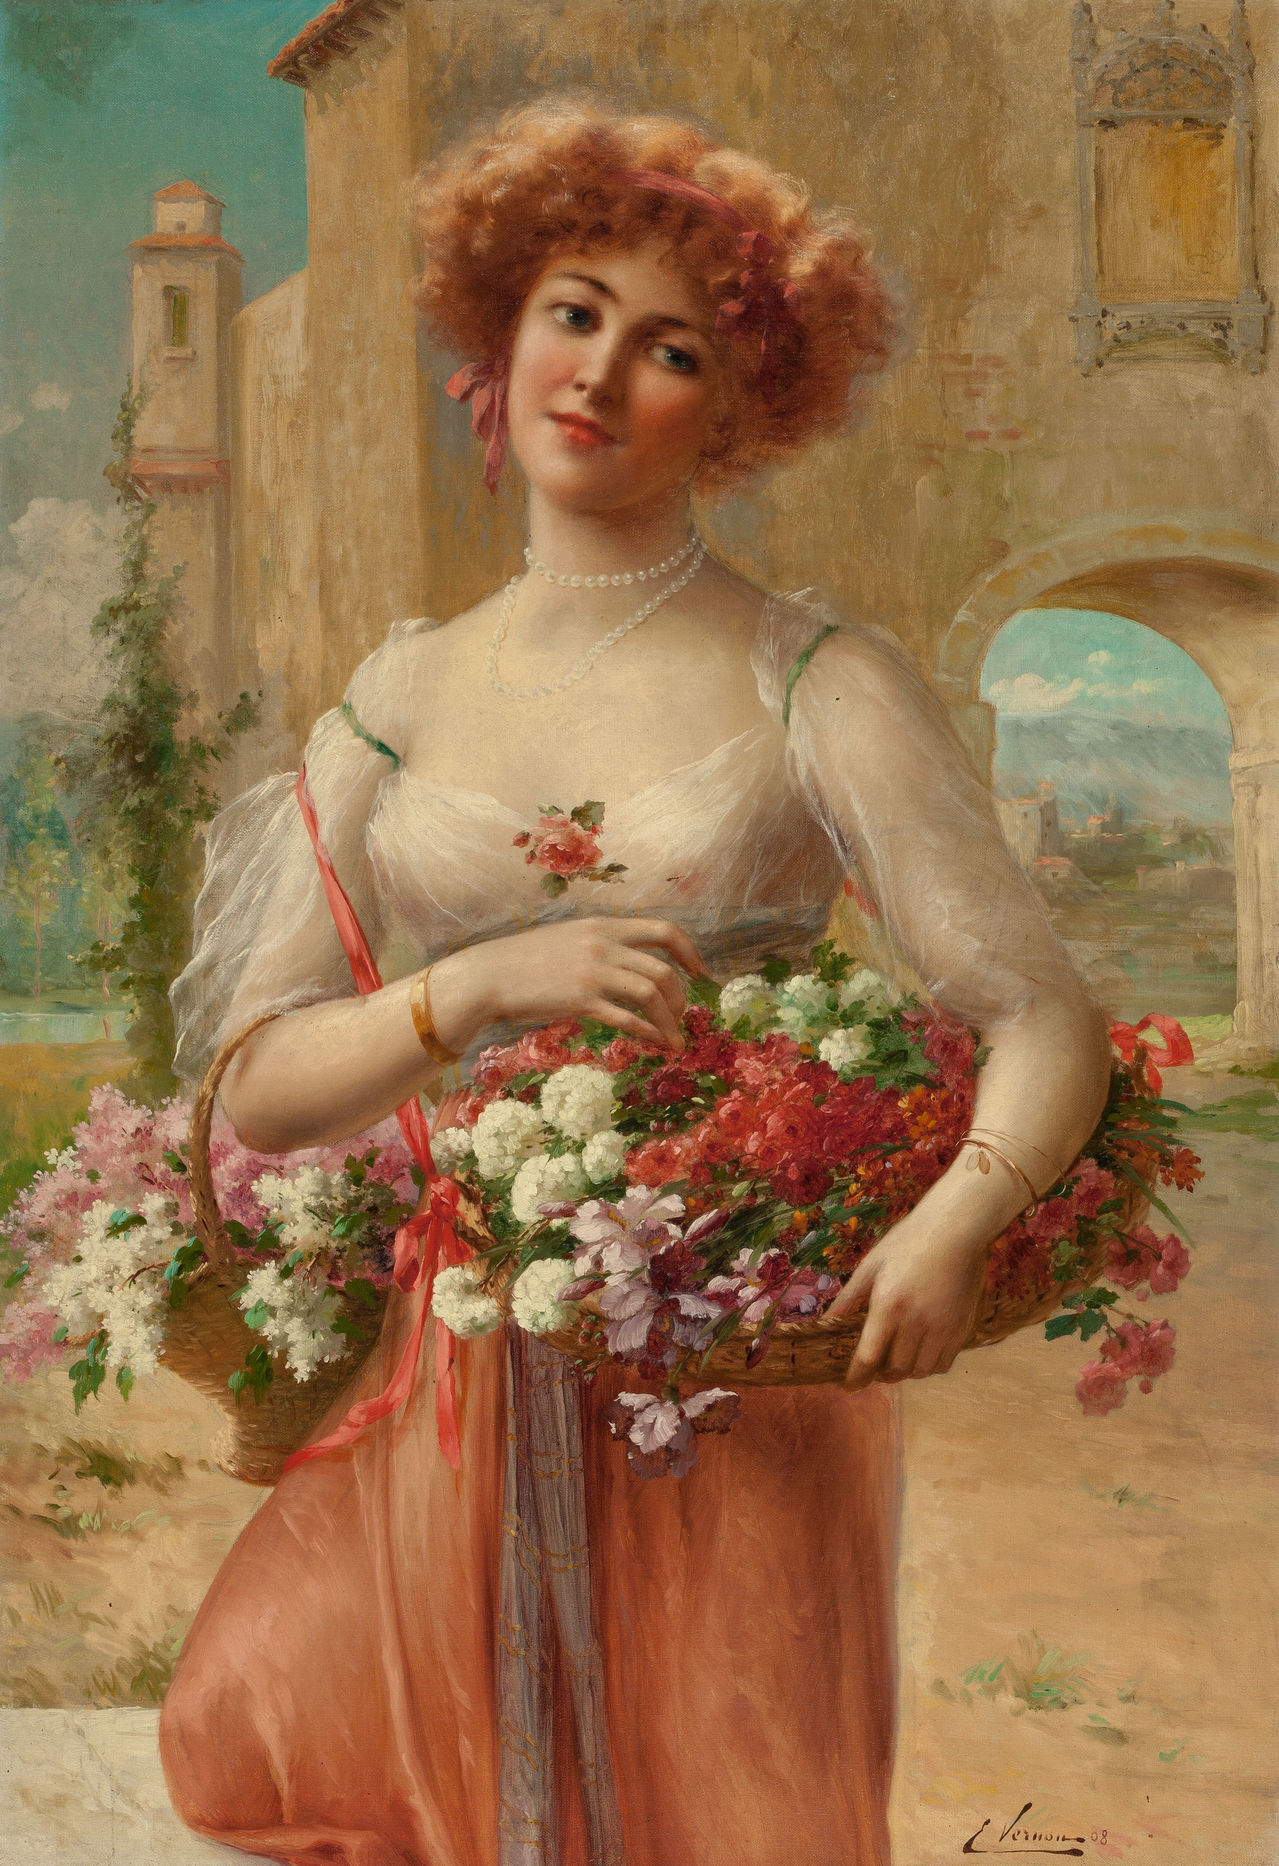 Roses by Emile Vernon - 1908